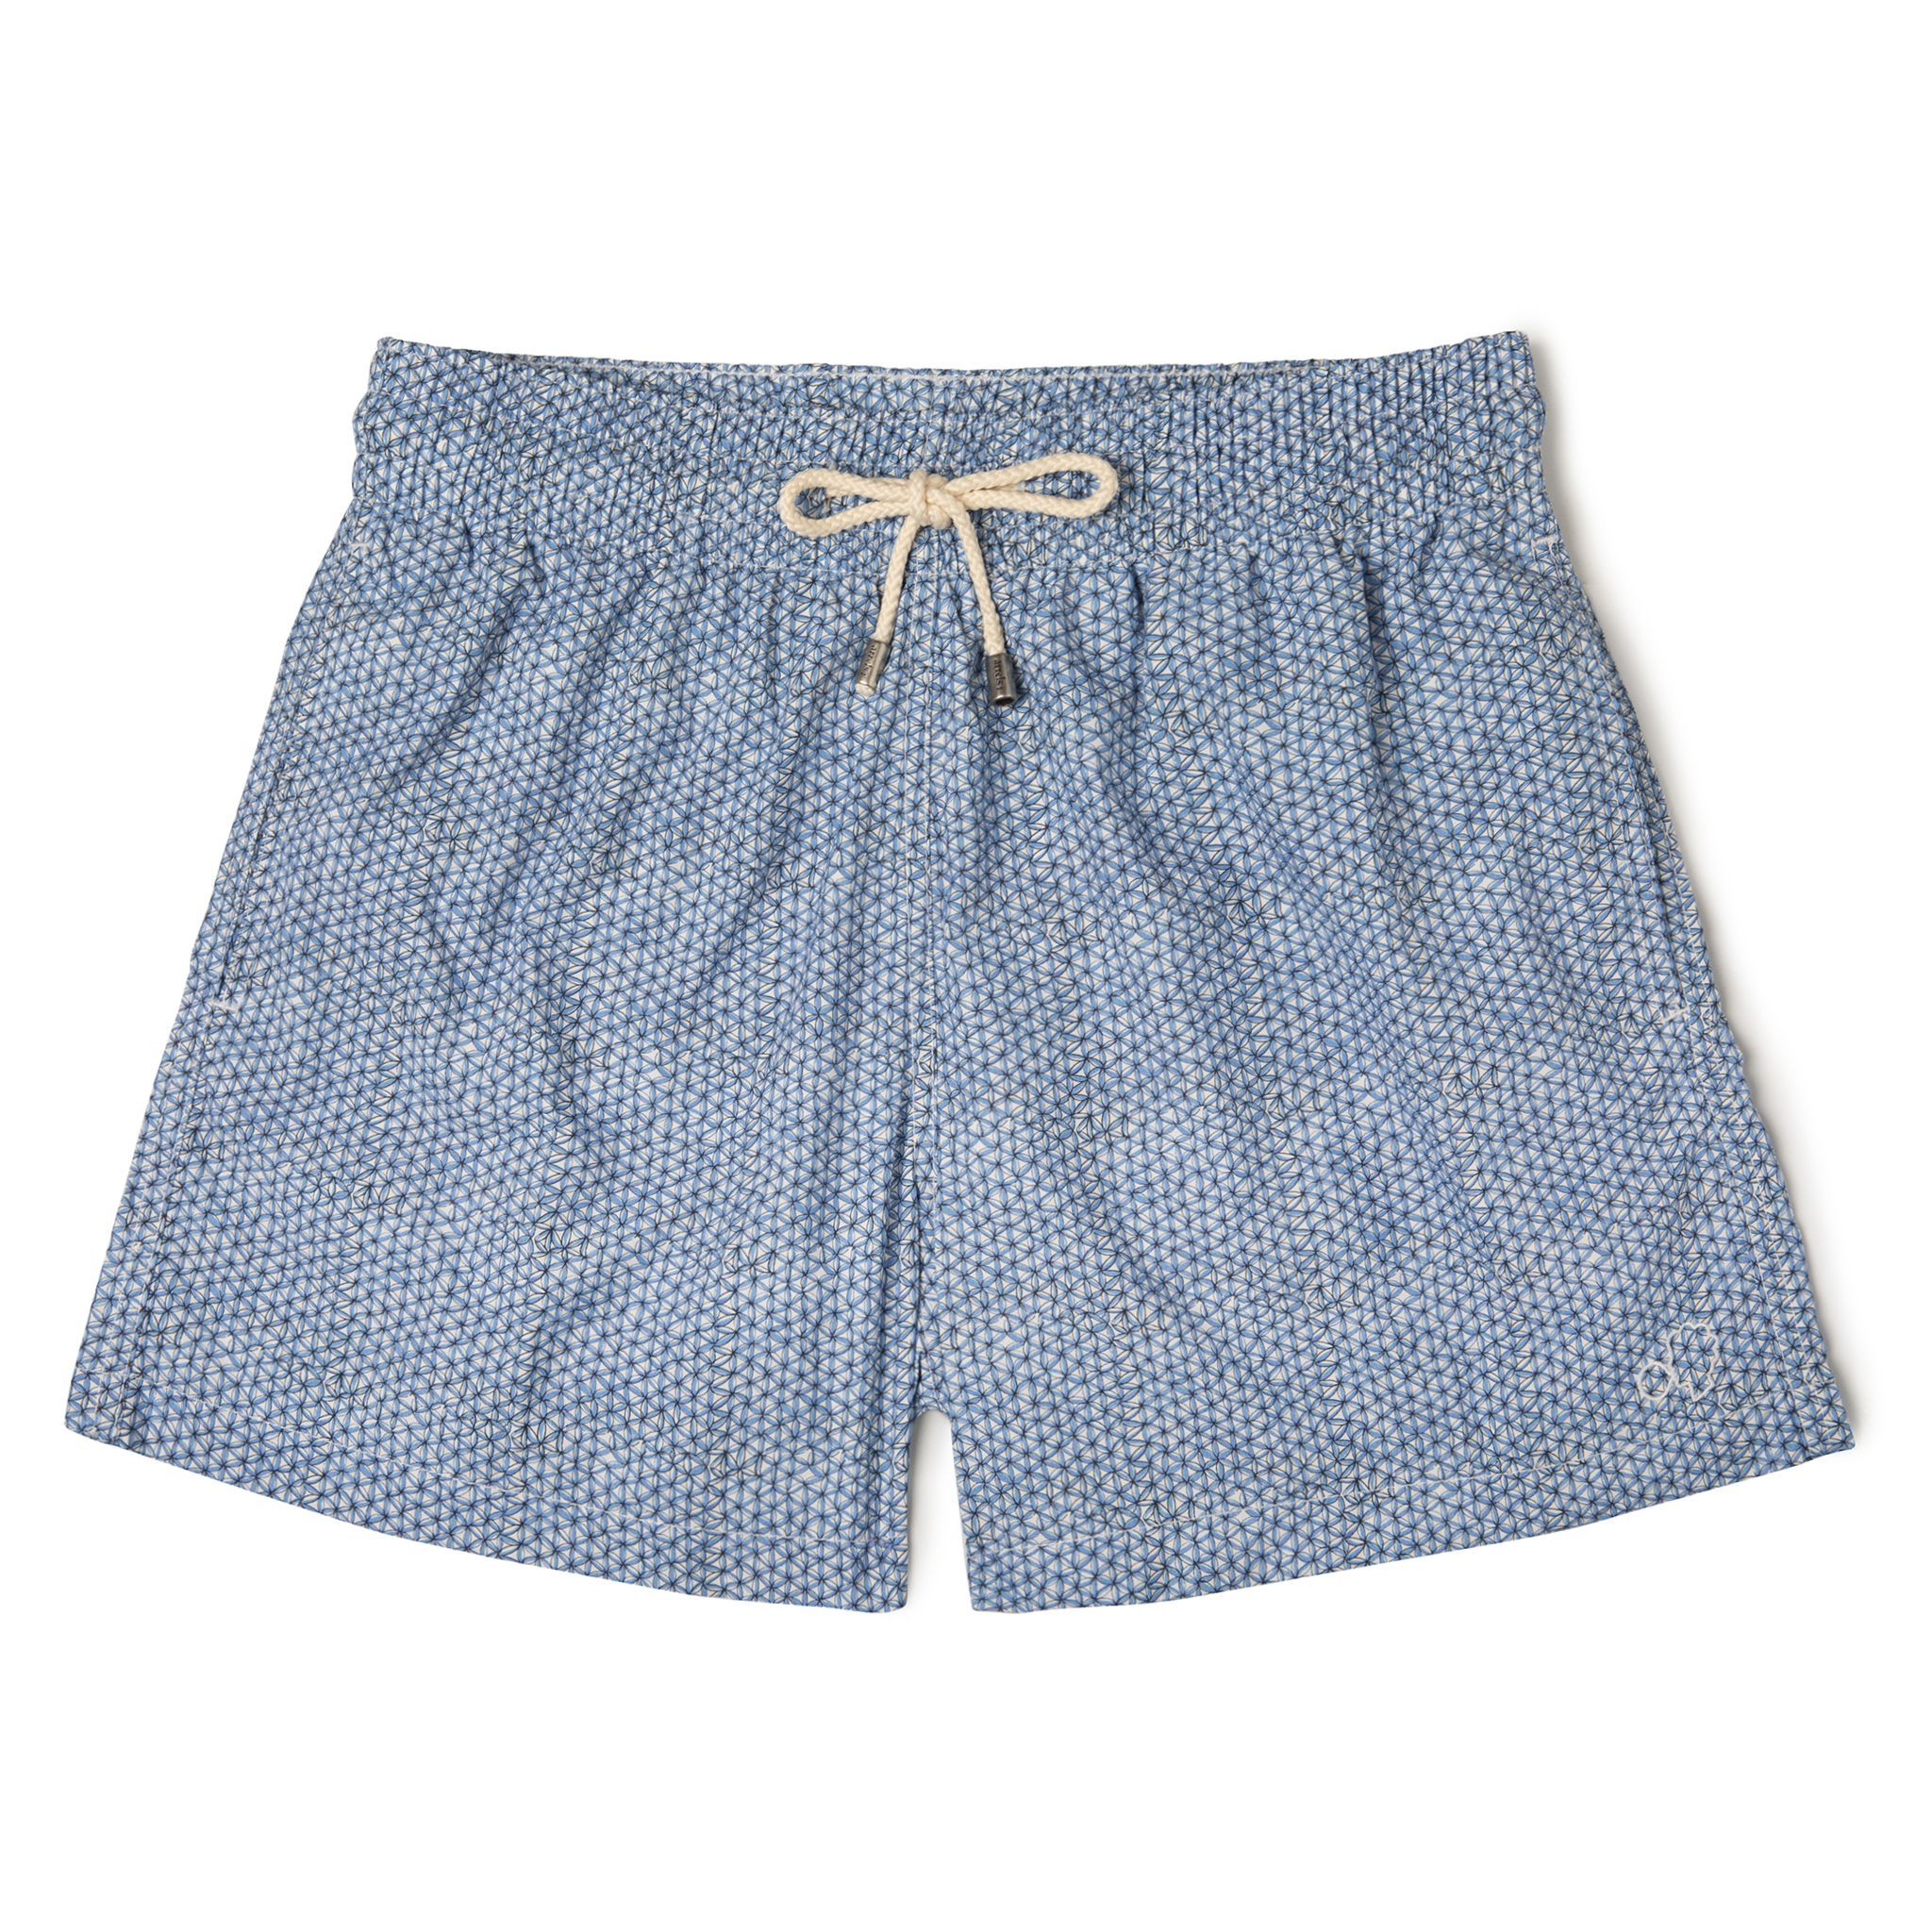 Short-Length Swim Shorts Blue Net